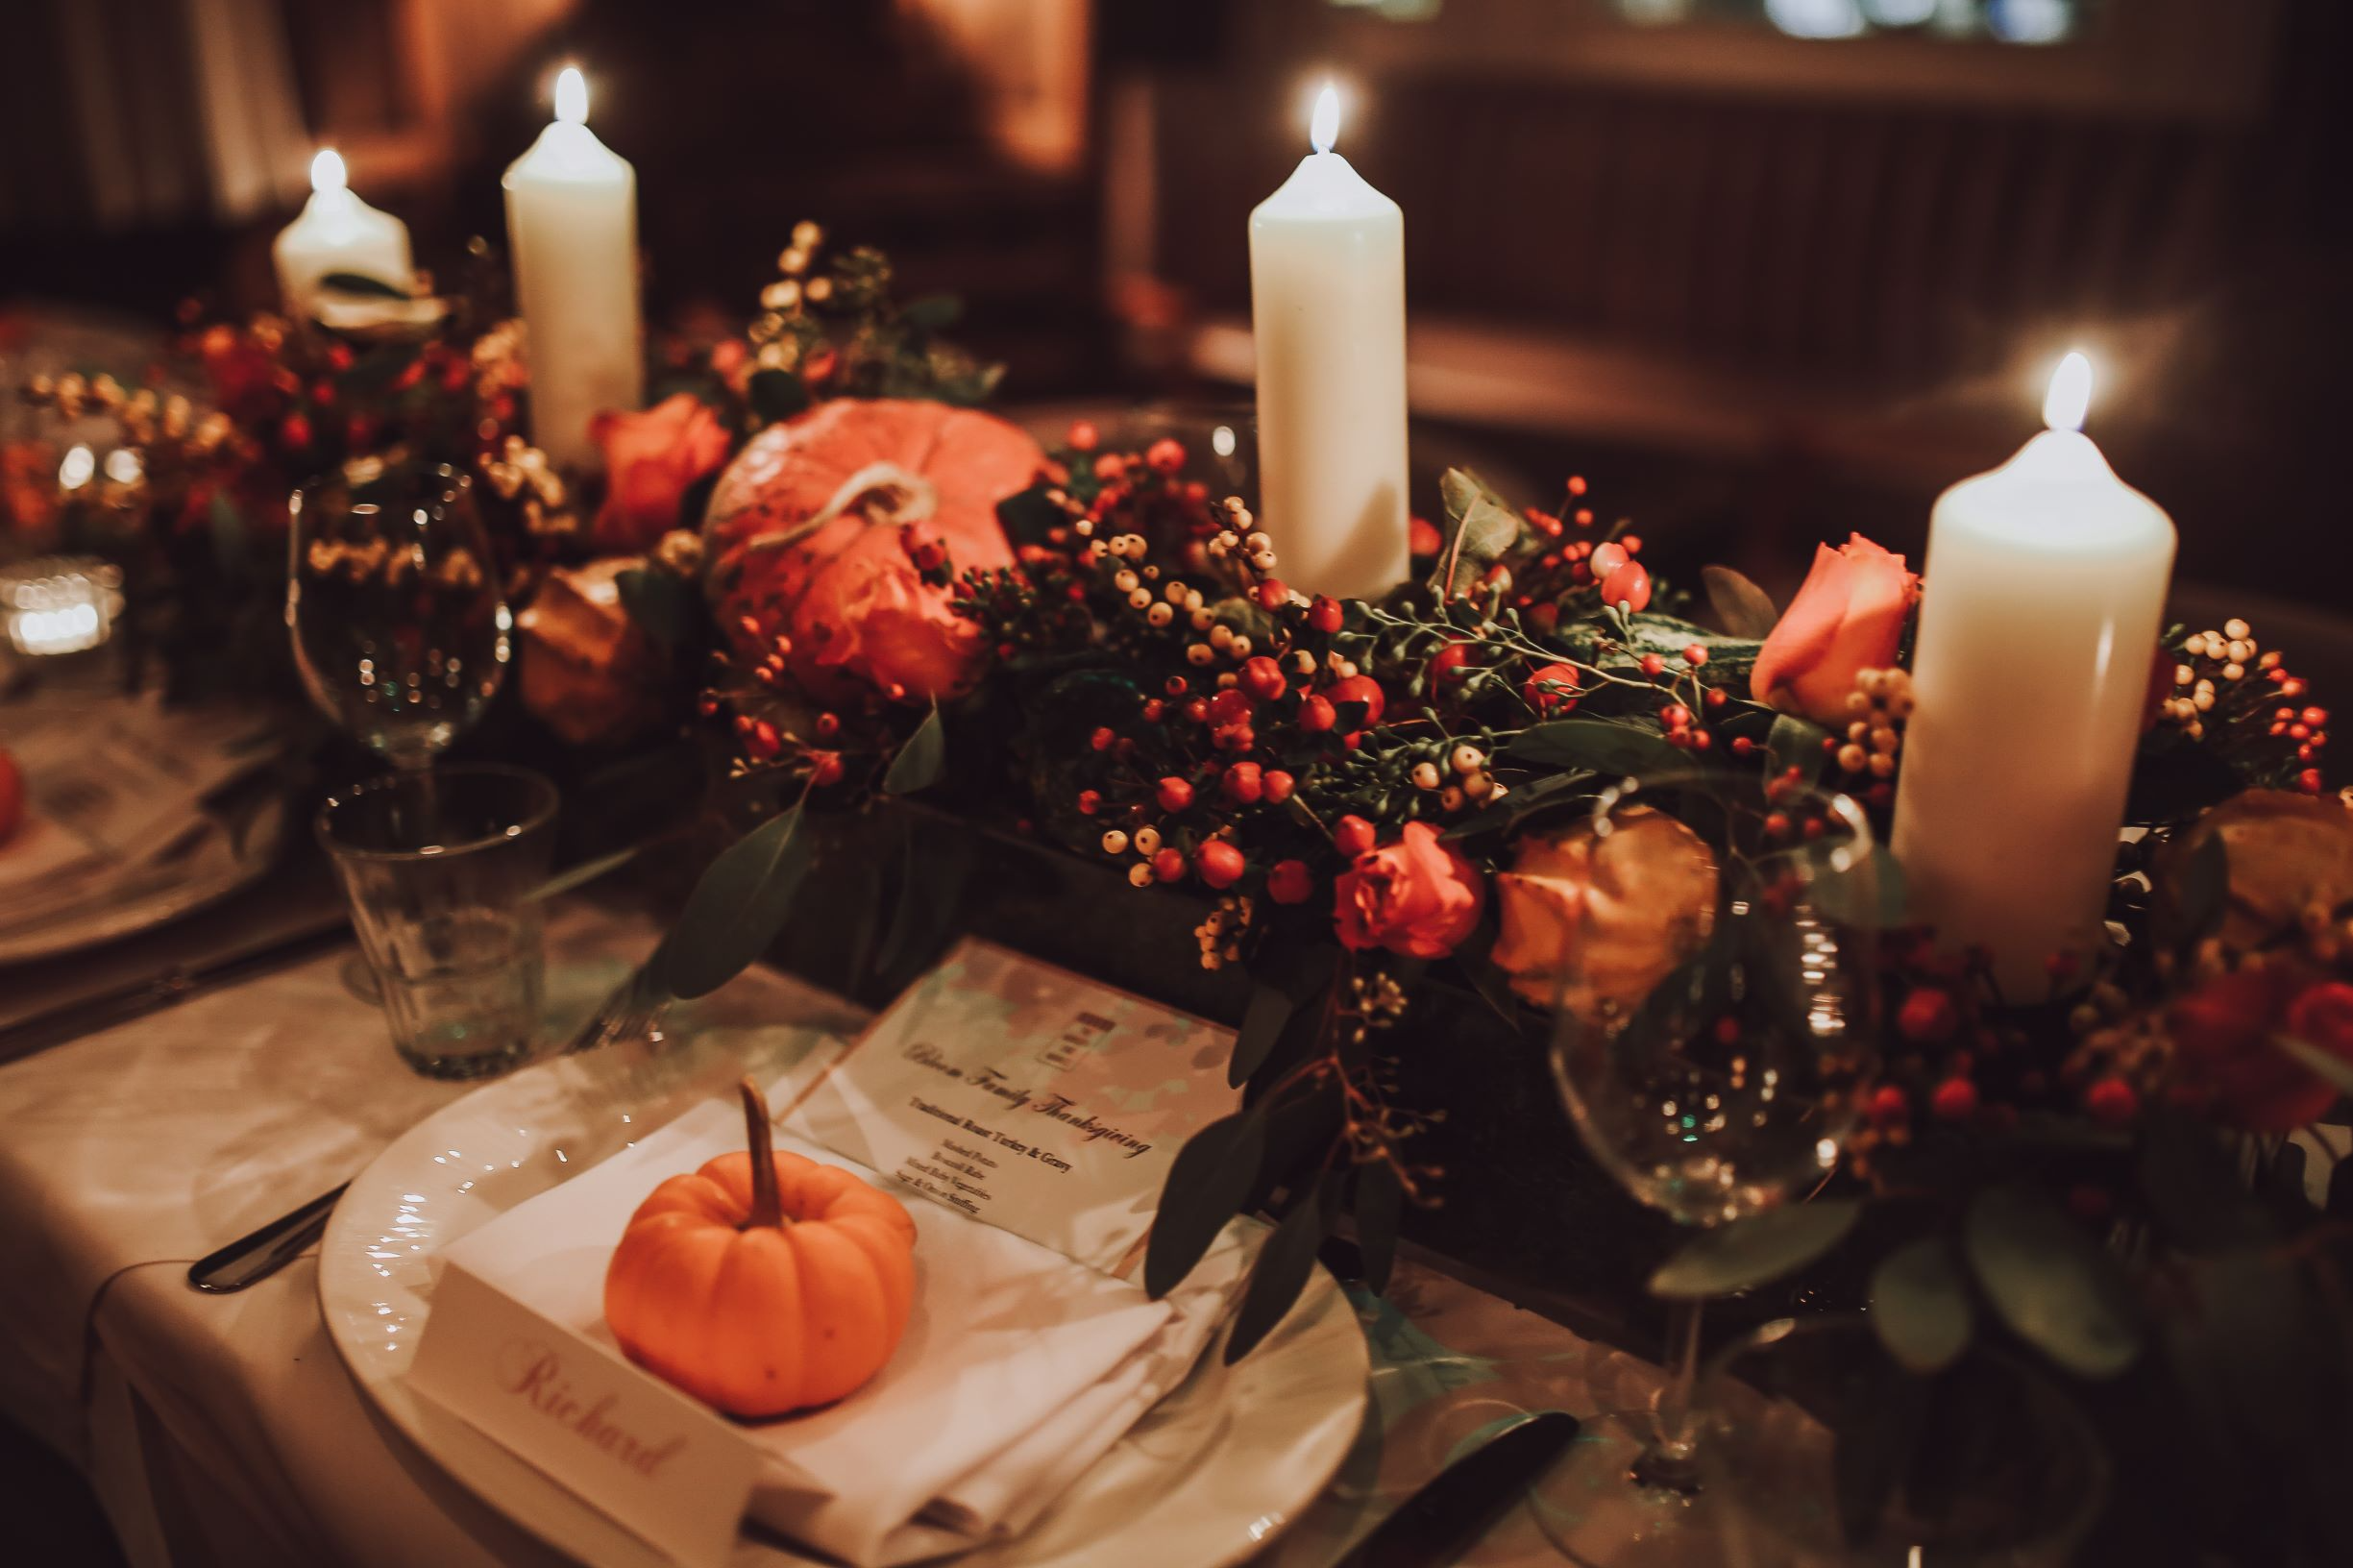 Traditional thanksgiving table in traditional fall season colors.